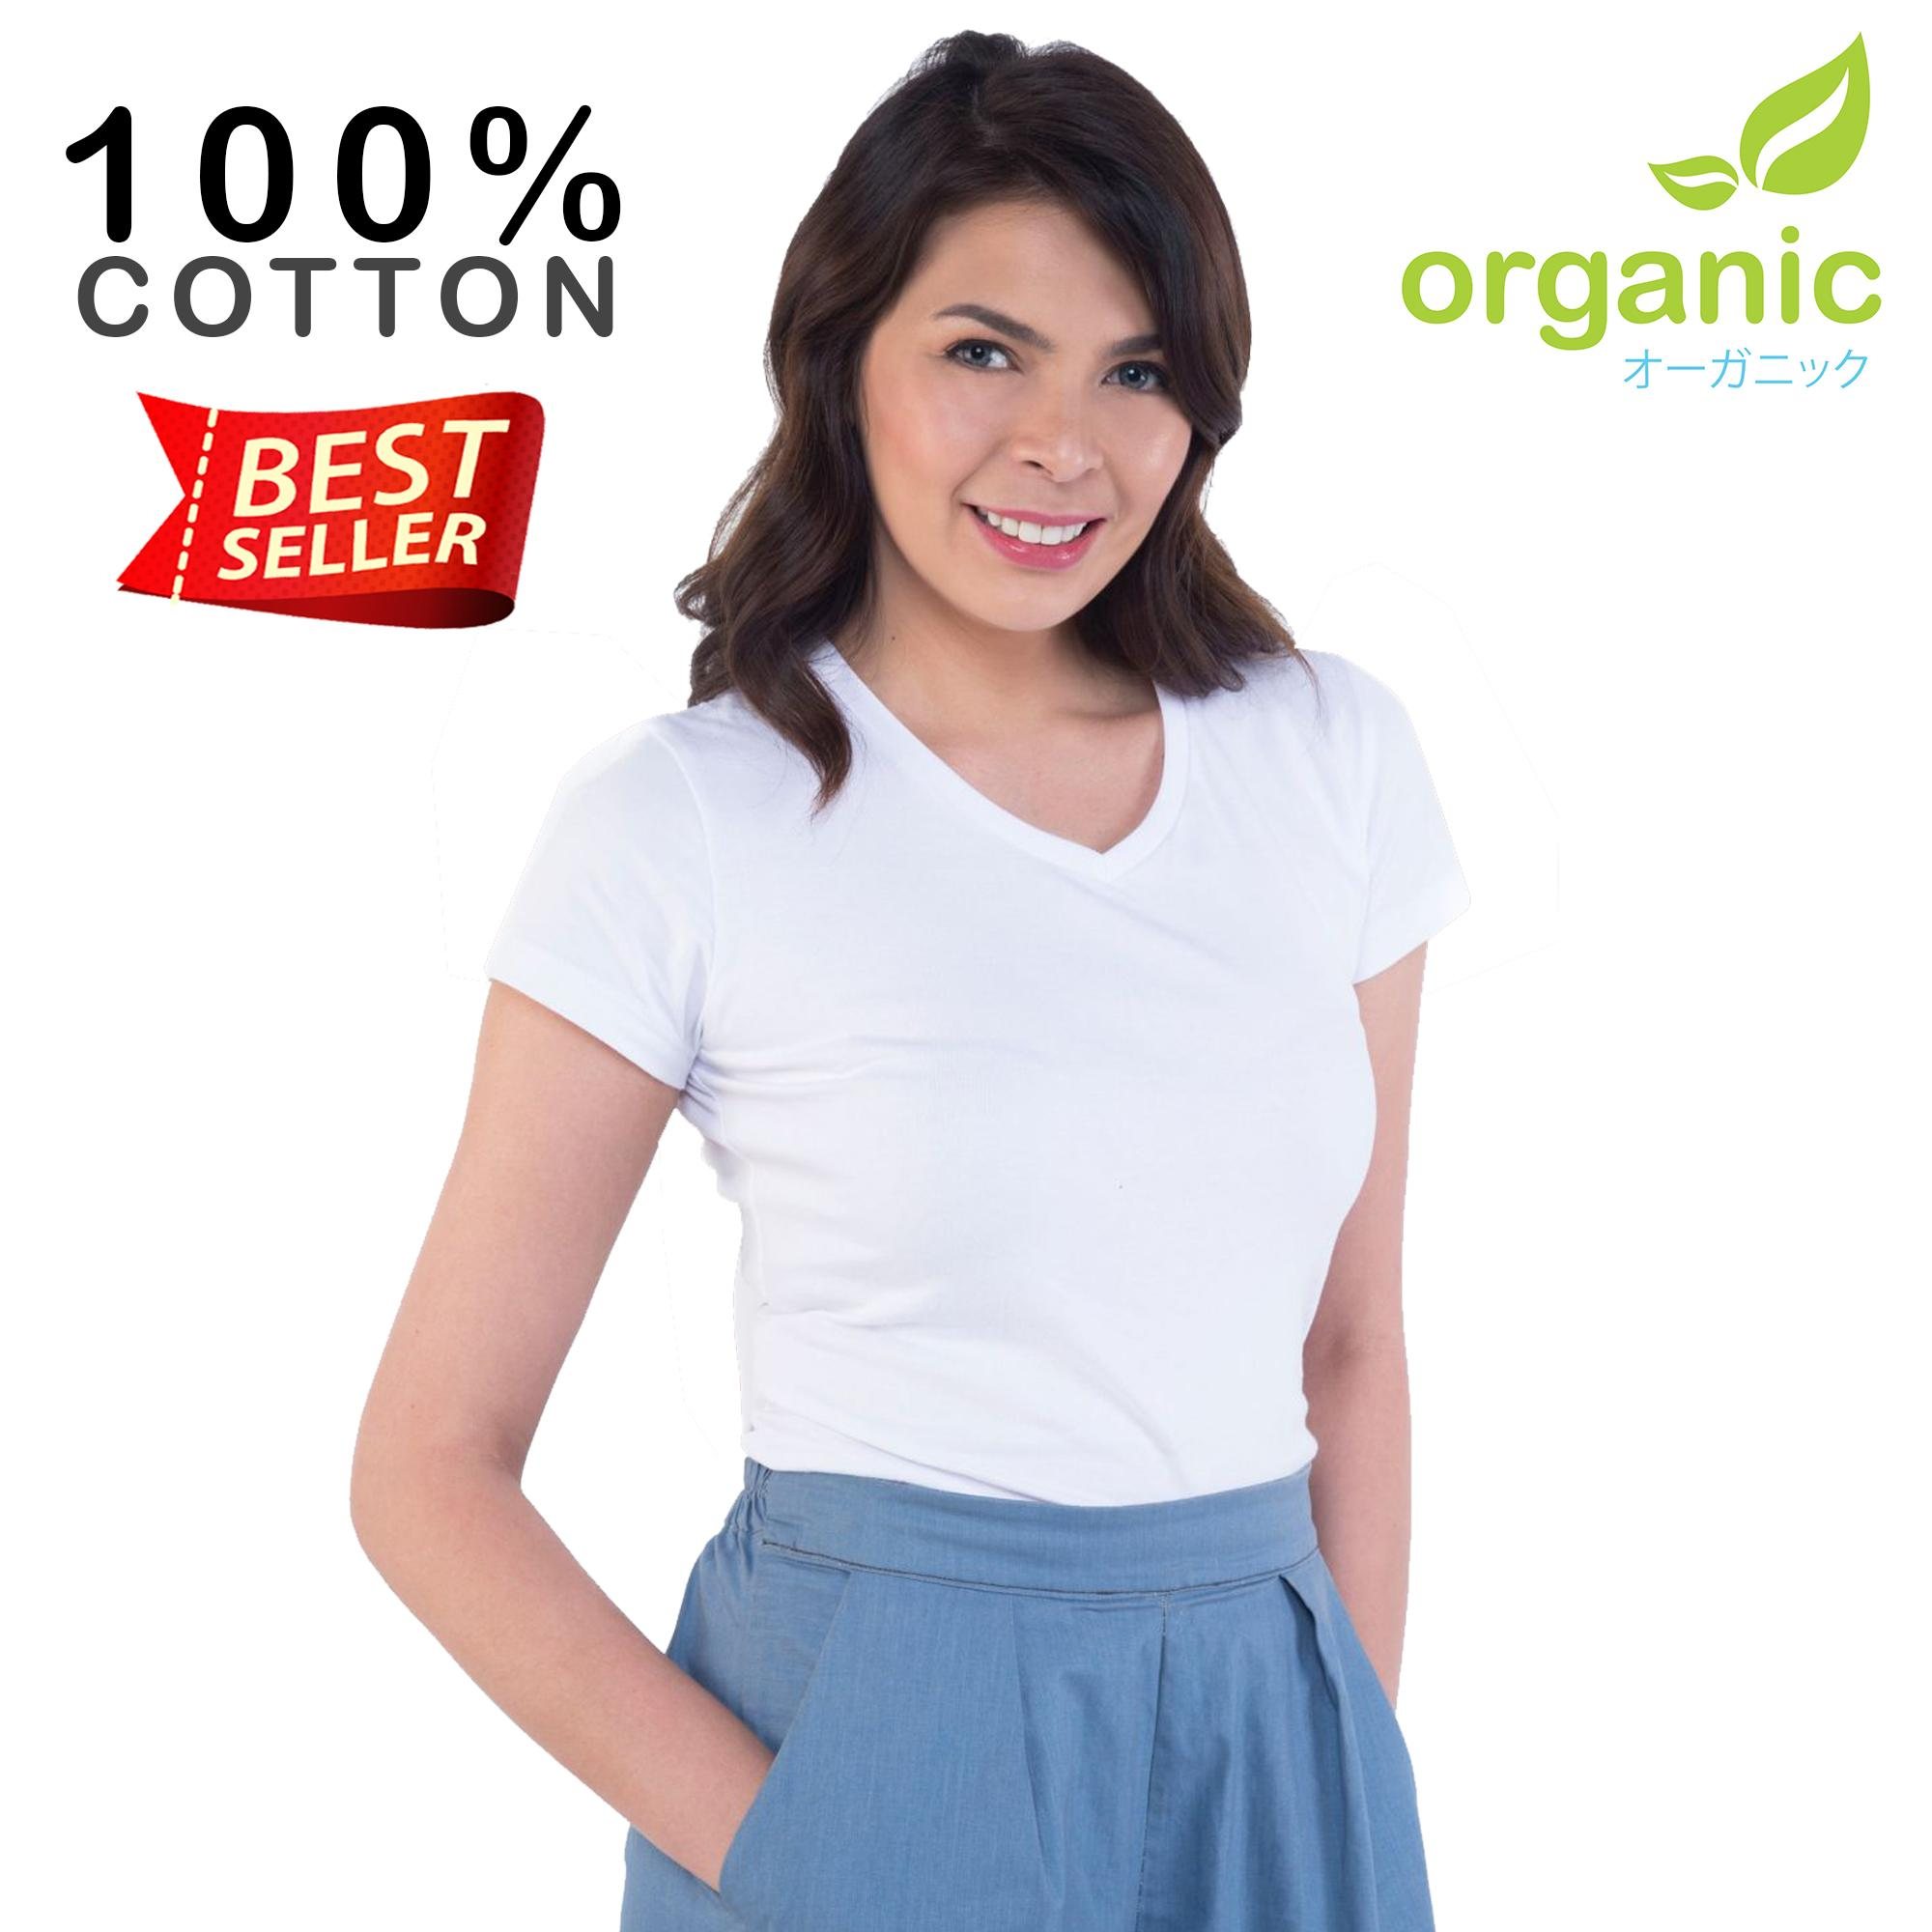 Womens T-Shirts for sale - T-Shirts for Women online brands, prices ...